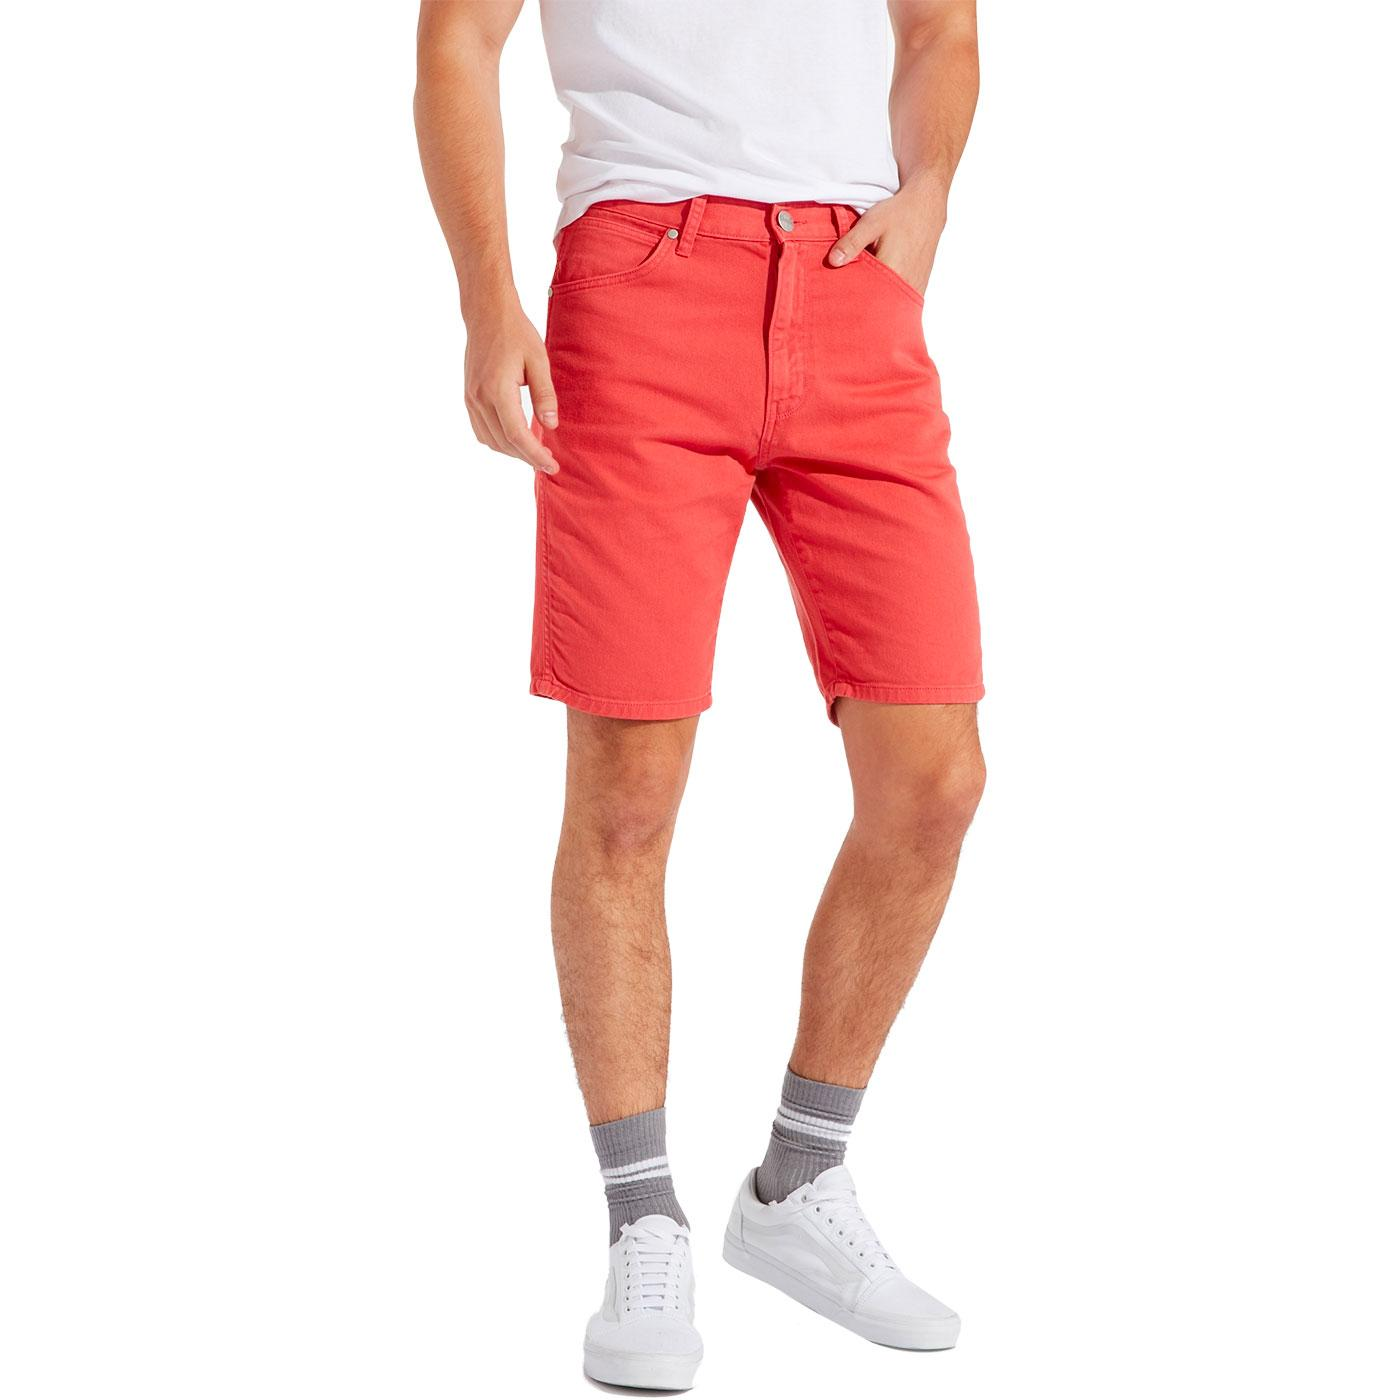 WRANGLER Retro 5 Pocket Chino Shorts (Emberglow)